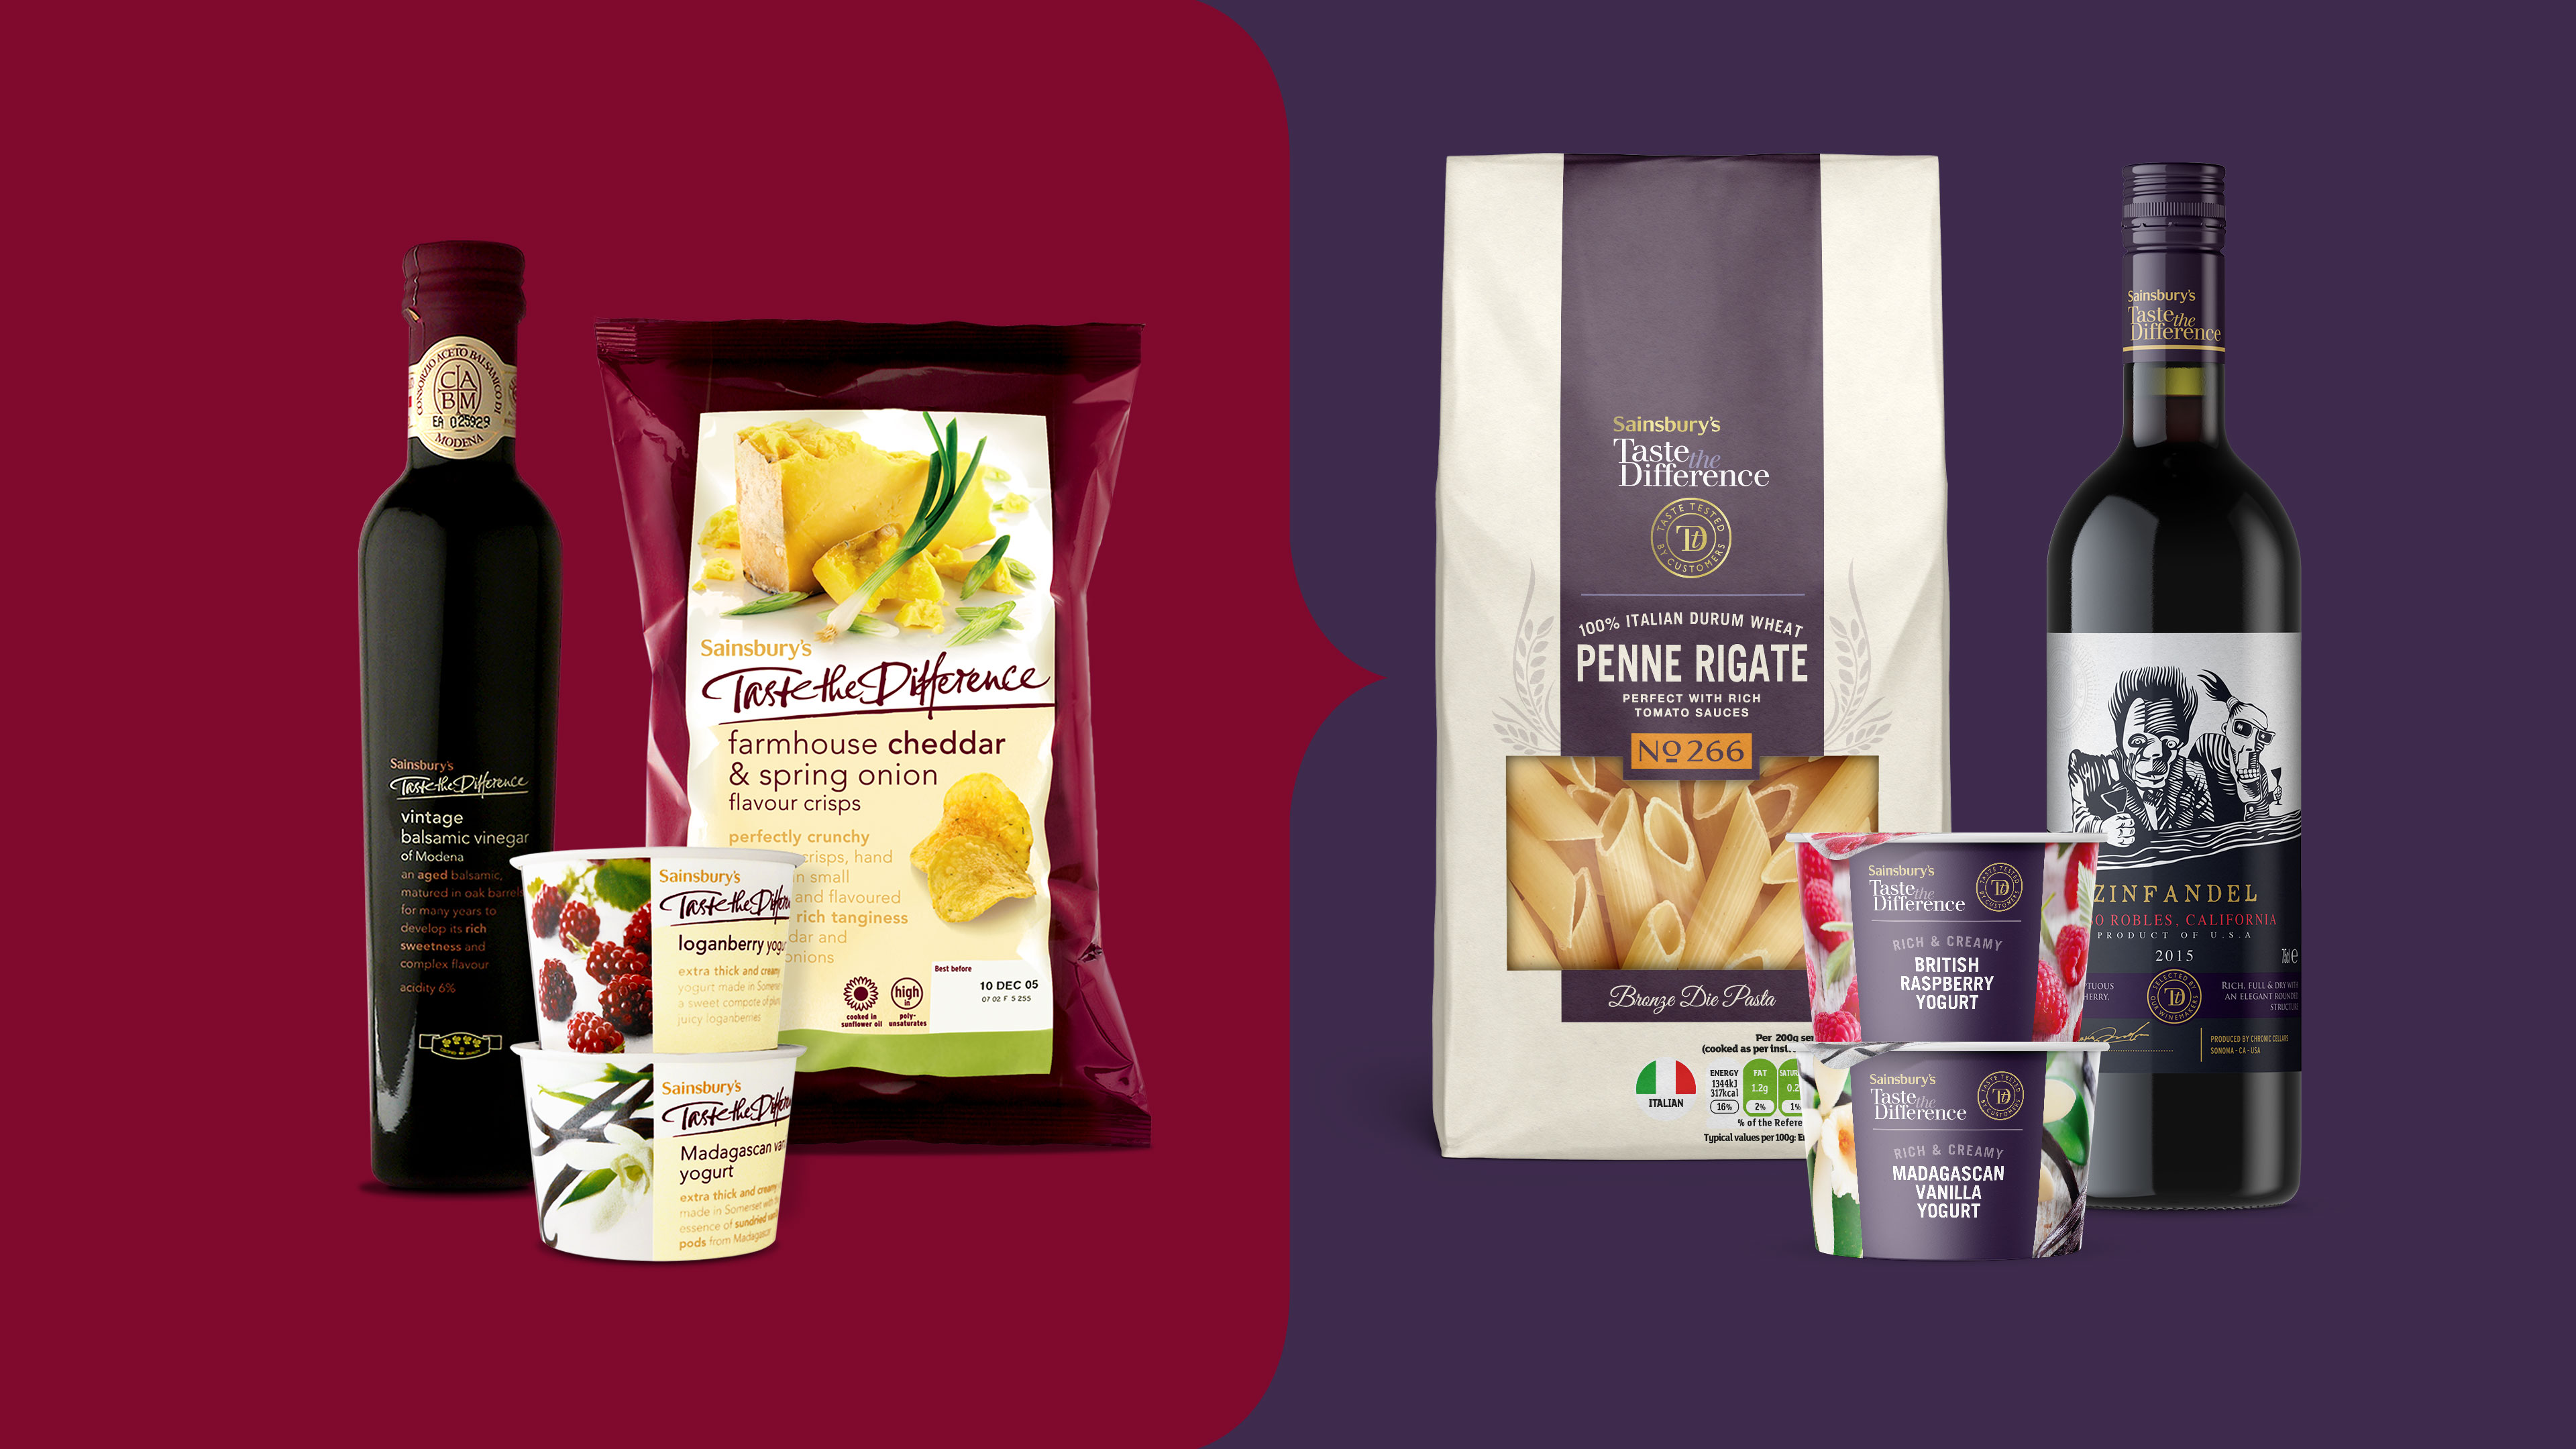 Sainsbury's Taste the Difference after re-design